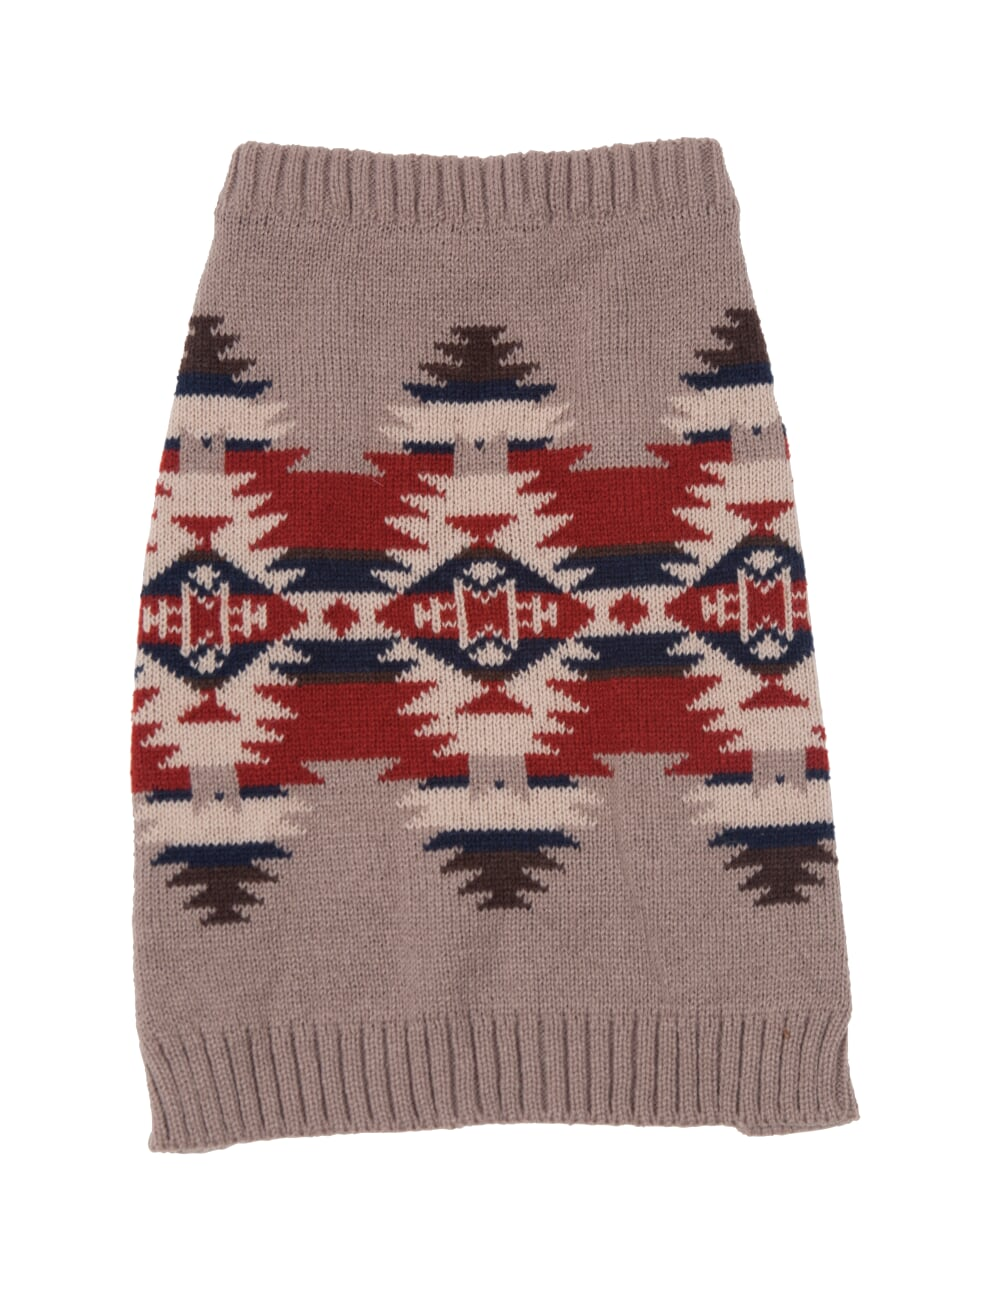 Pendleton Mountain Majesty Dog Sweater